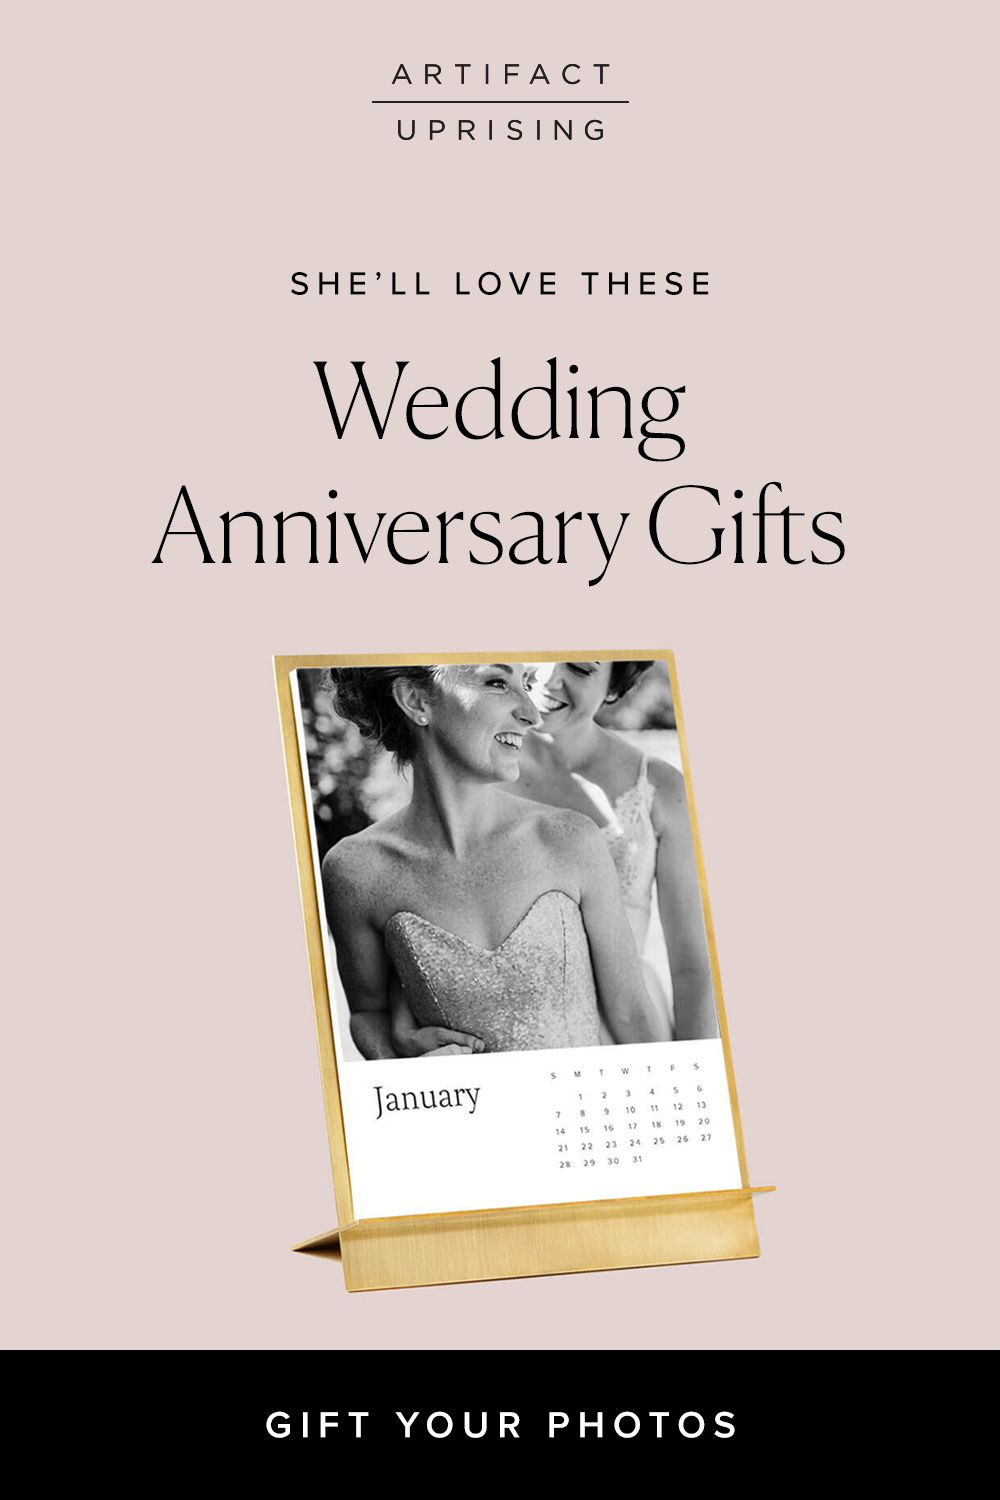 Thoughtful Anniversary Gifts For Her In 2020 Anniversary Gifts Anniversary Gift For Her Wedding Anniversary Gifts